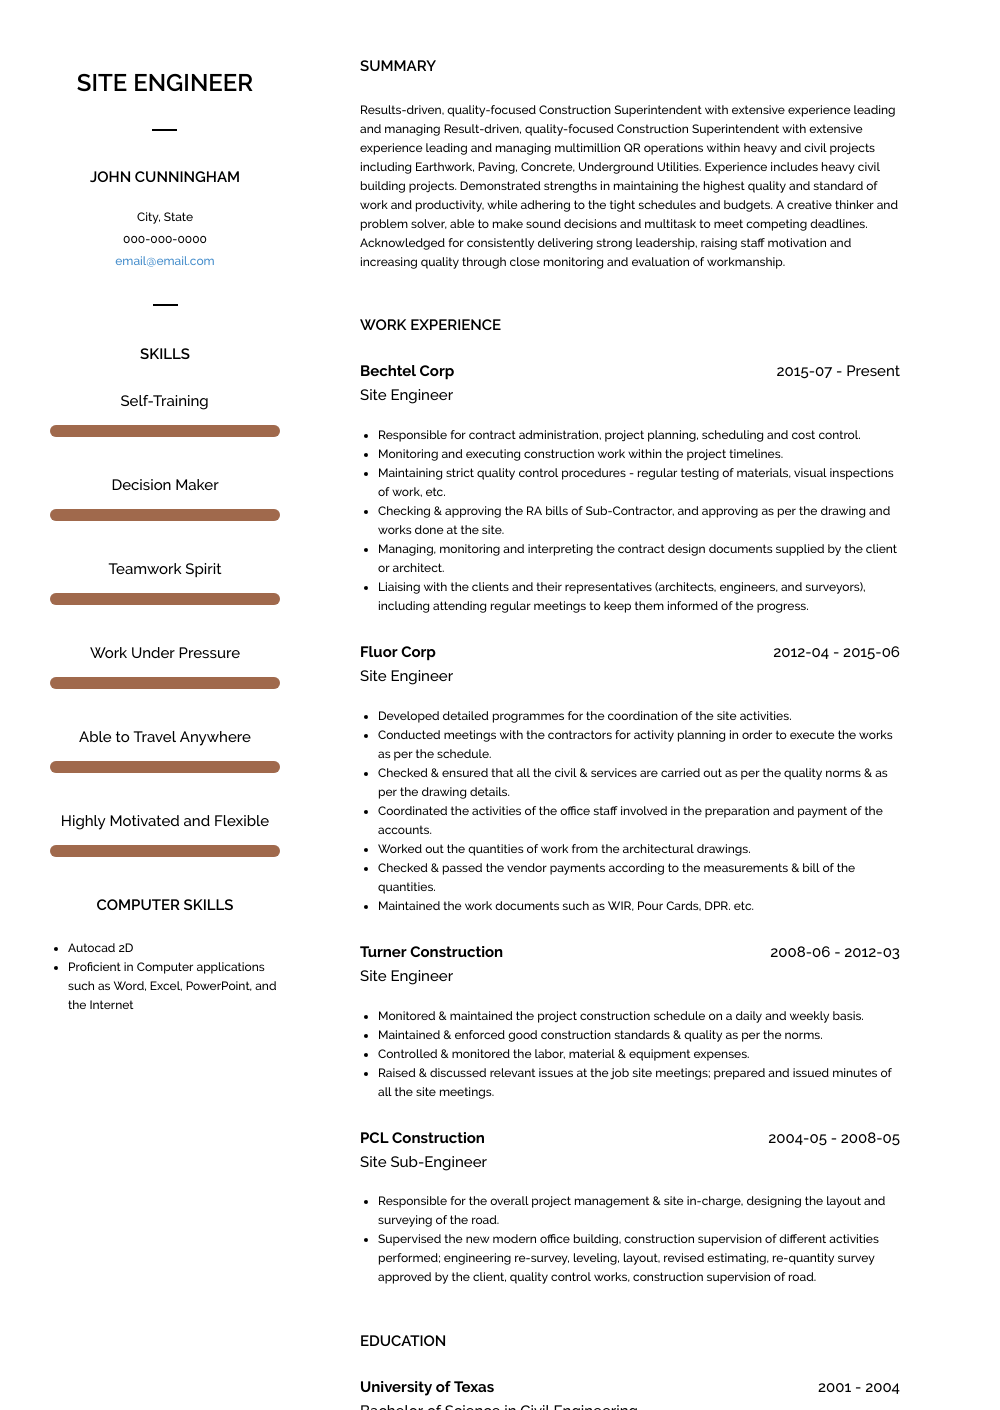 Site Engineer Resume Sample and Template